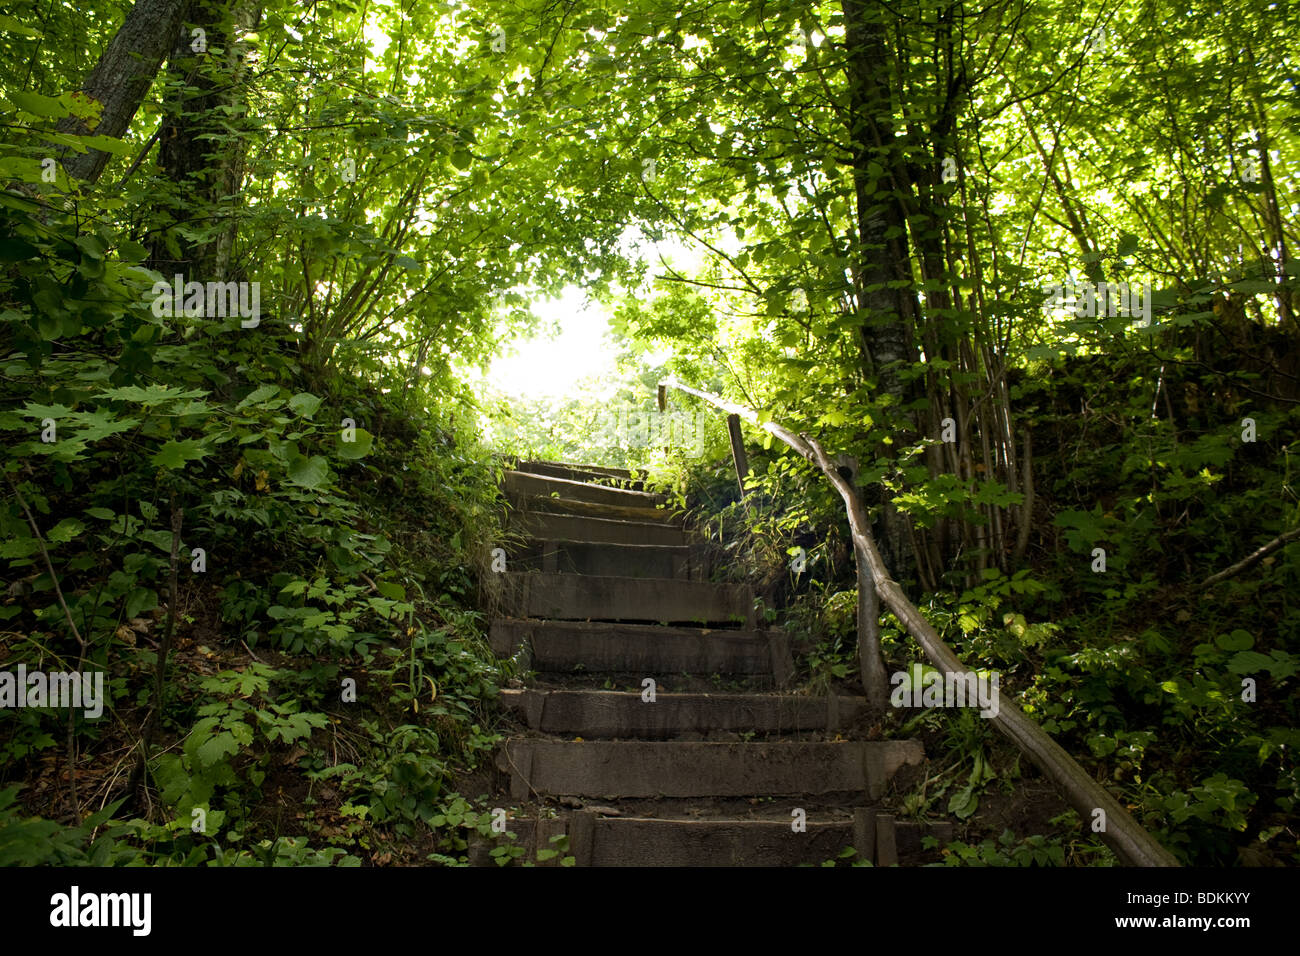 Forest stairways - Stock Image